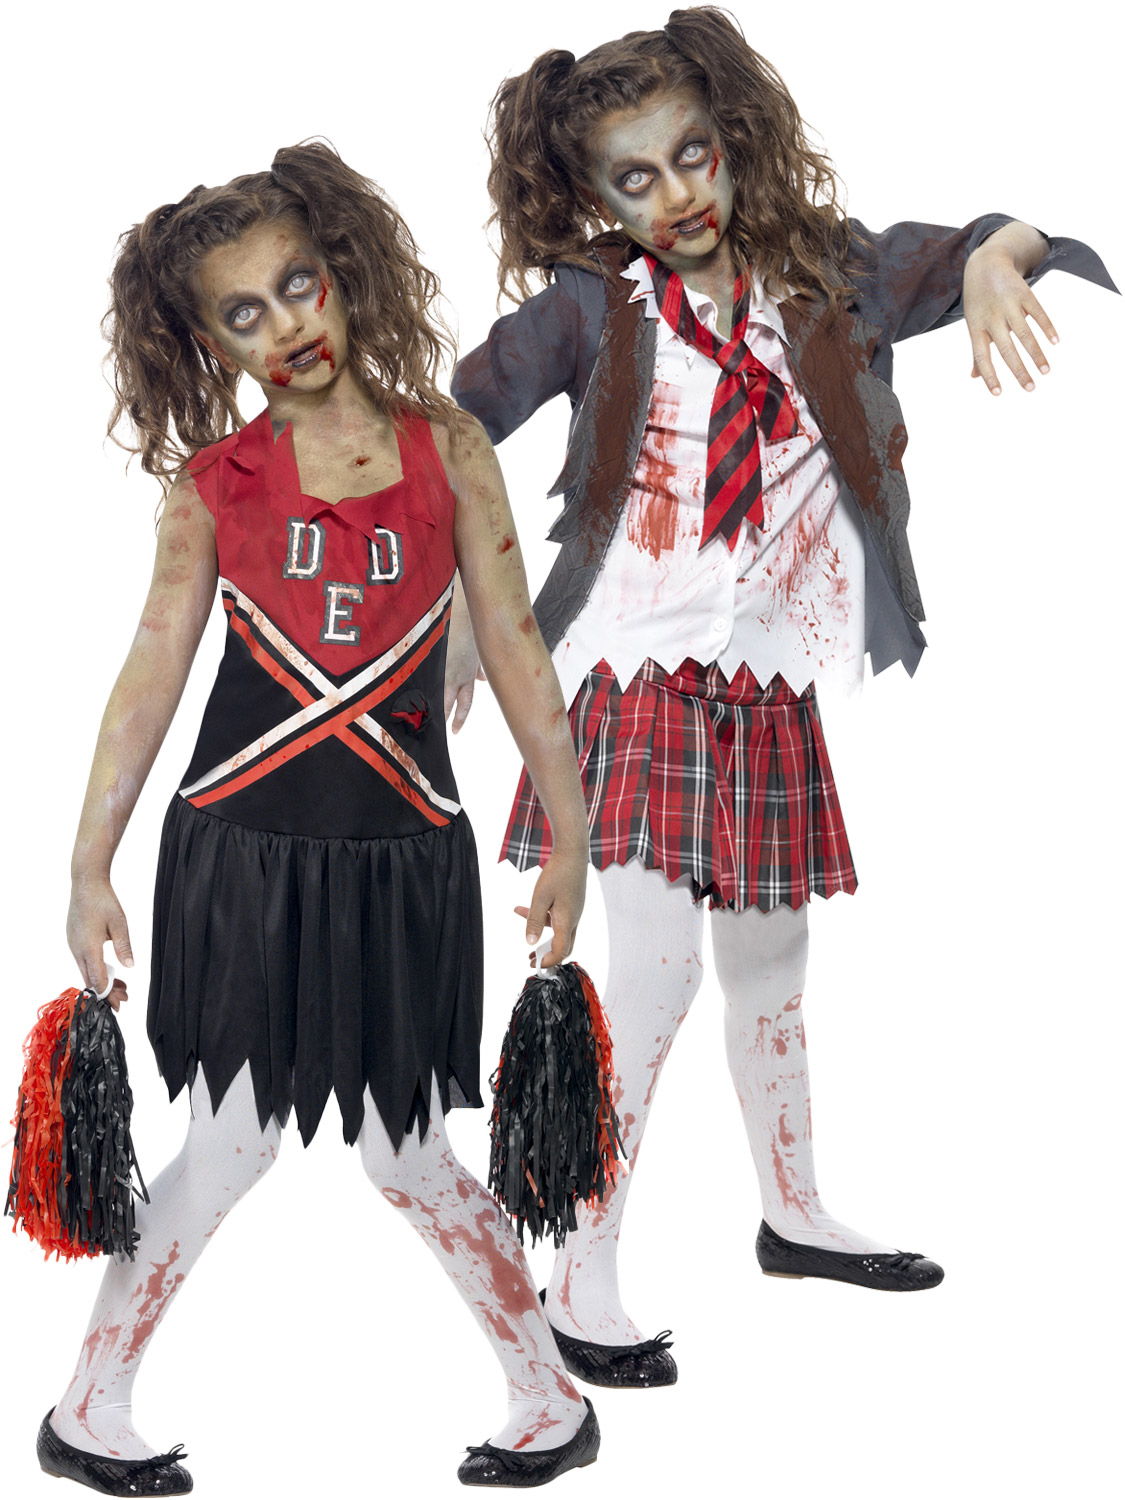 girls zombie cheerleader school girl costume halloween fancy dress party kids image 2